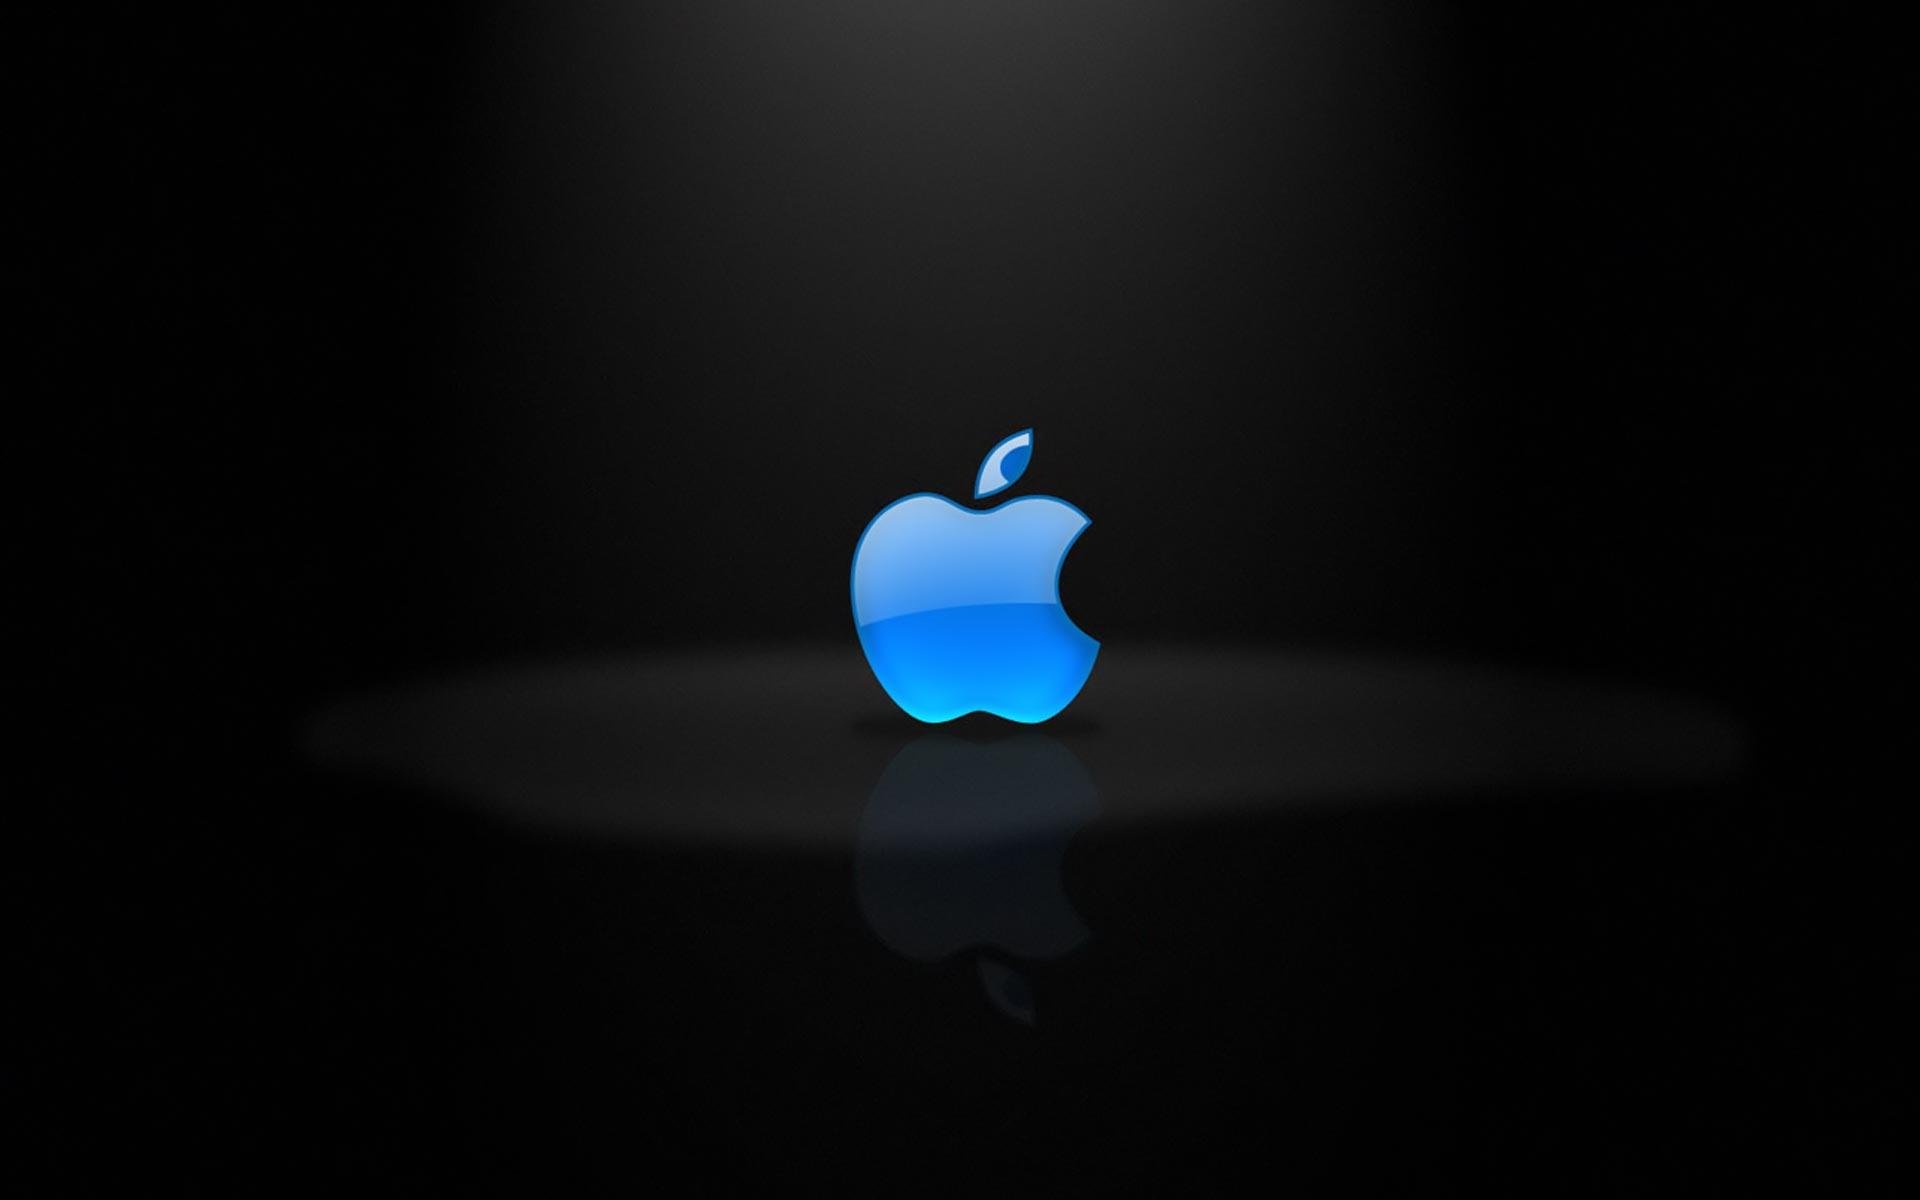 apple mac desktop wallpaper - wallpapersafari